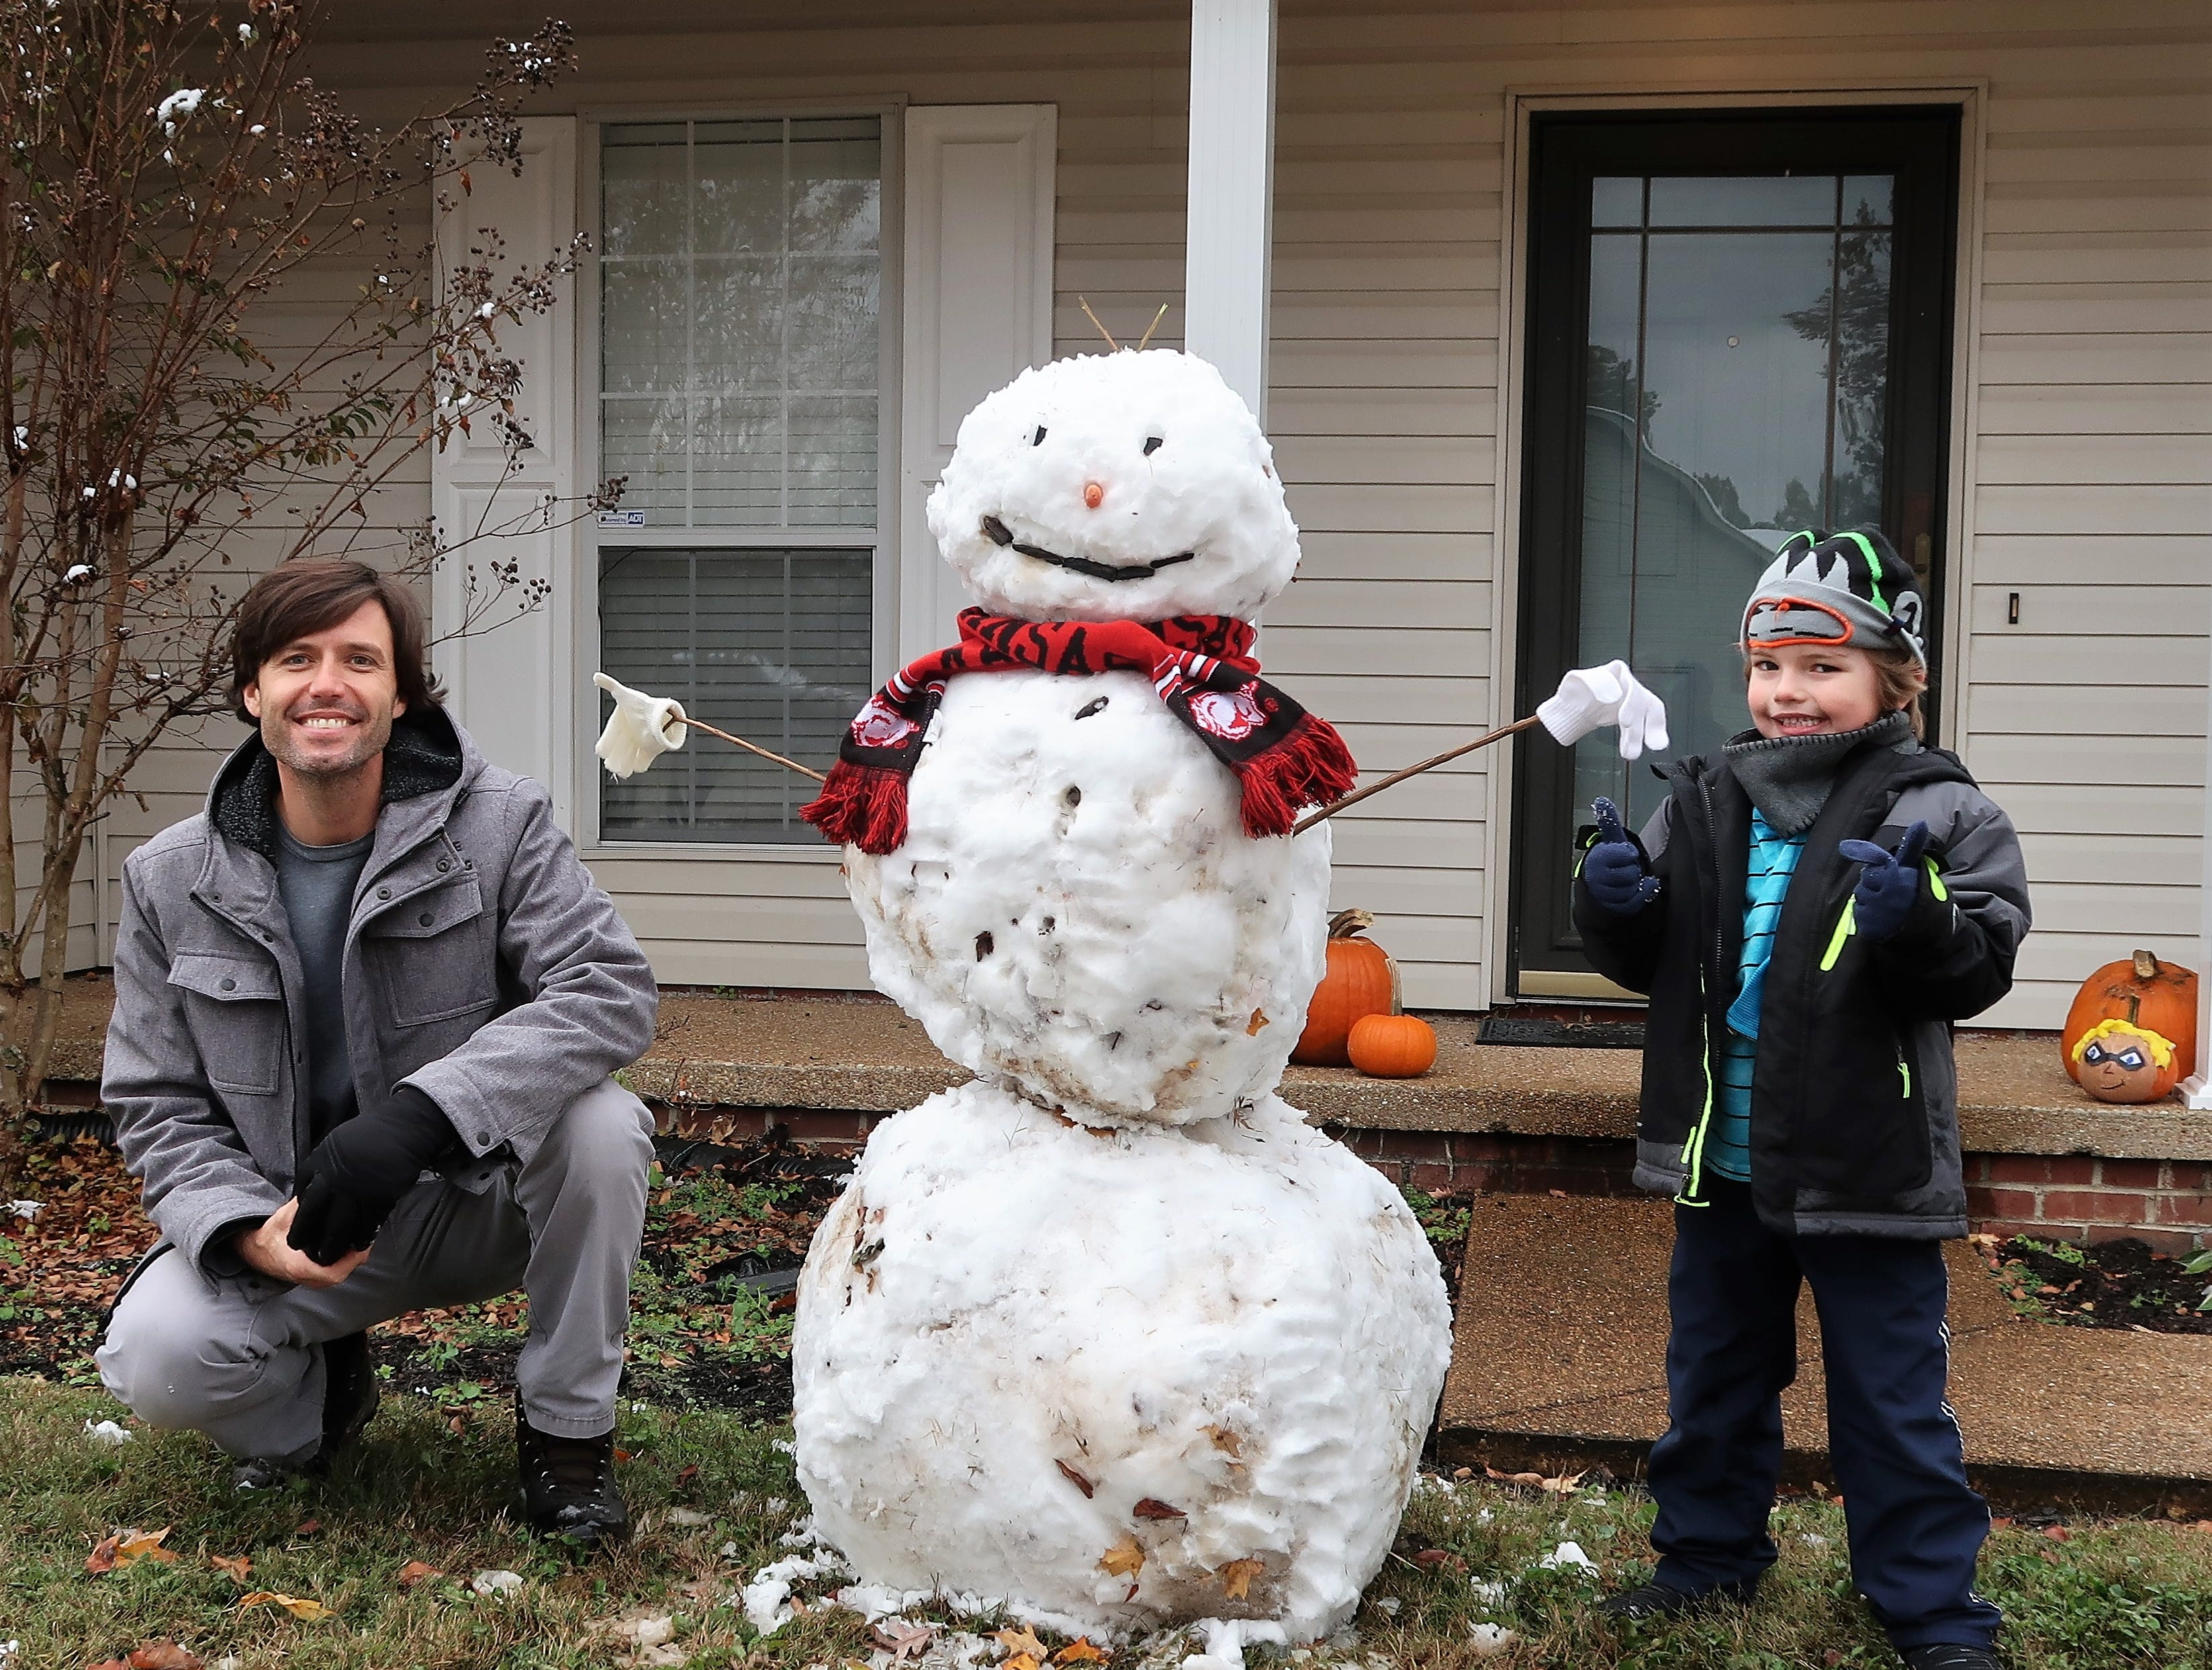 Brian Betts and his son, Luke, posed by the snowman they built on Thursday while enjoying playing in the unusual snow that fell  in West Tennessee on Wednesday night, November 14, 2018.